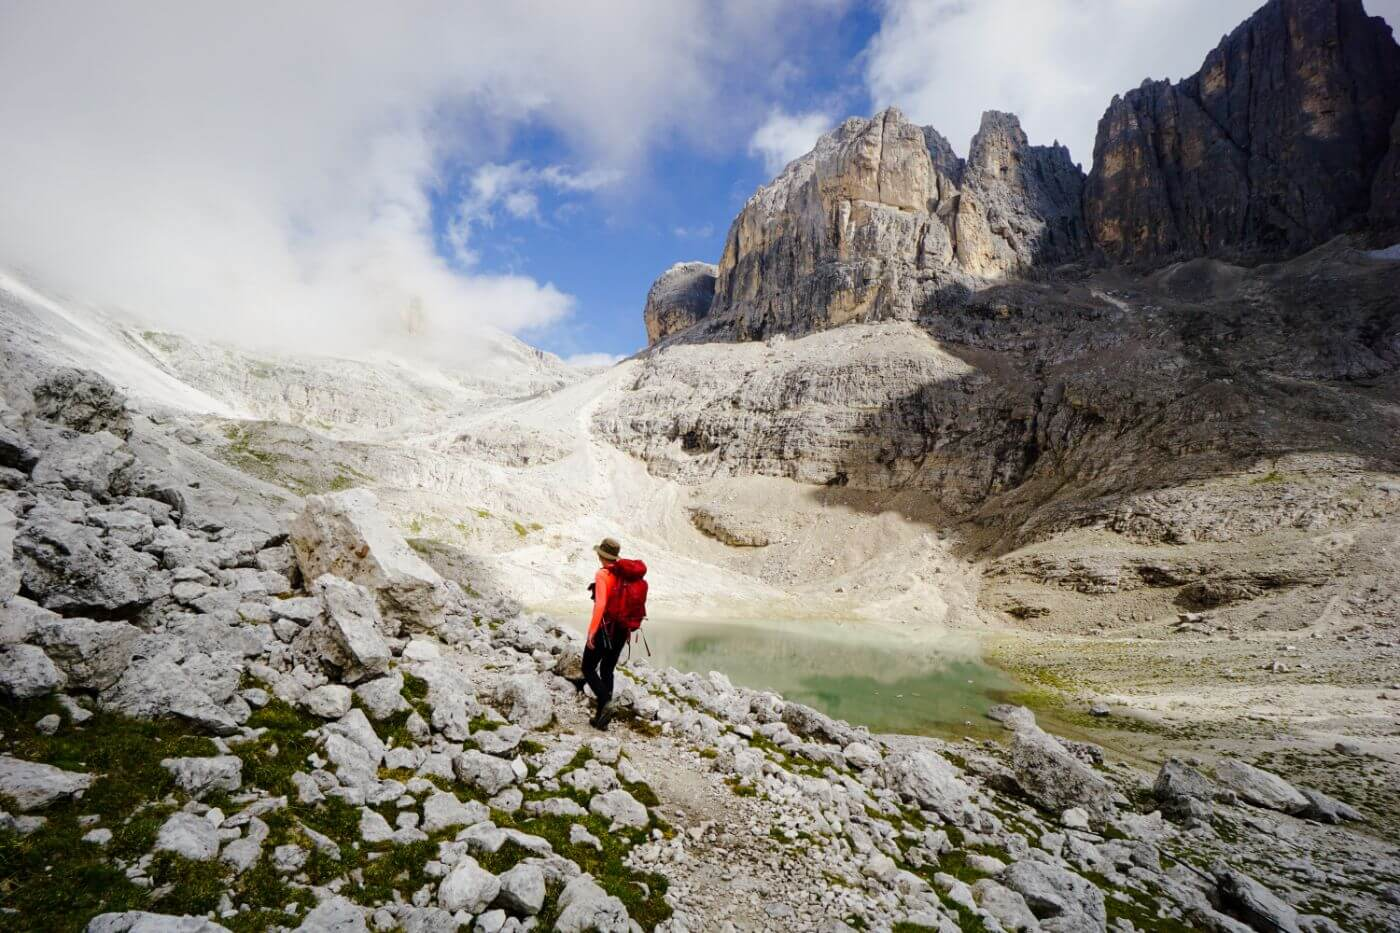 Around Pala di San Martino - Best Day Hikes in the Dolomites